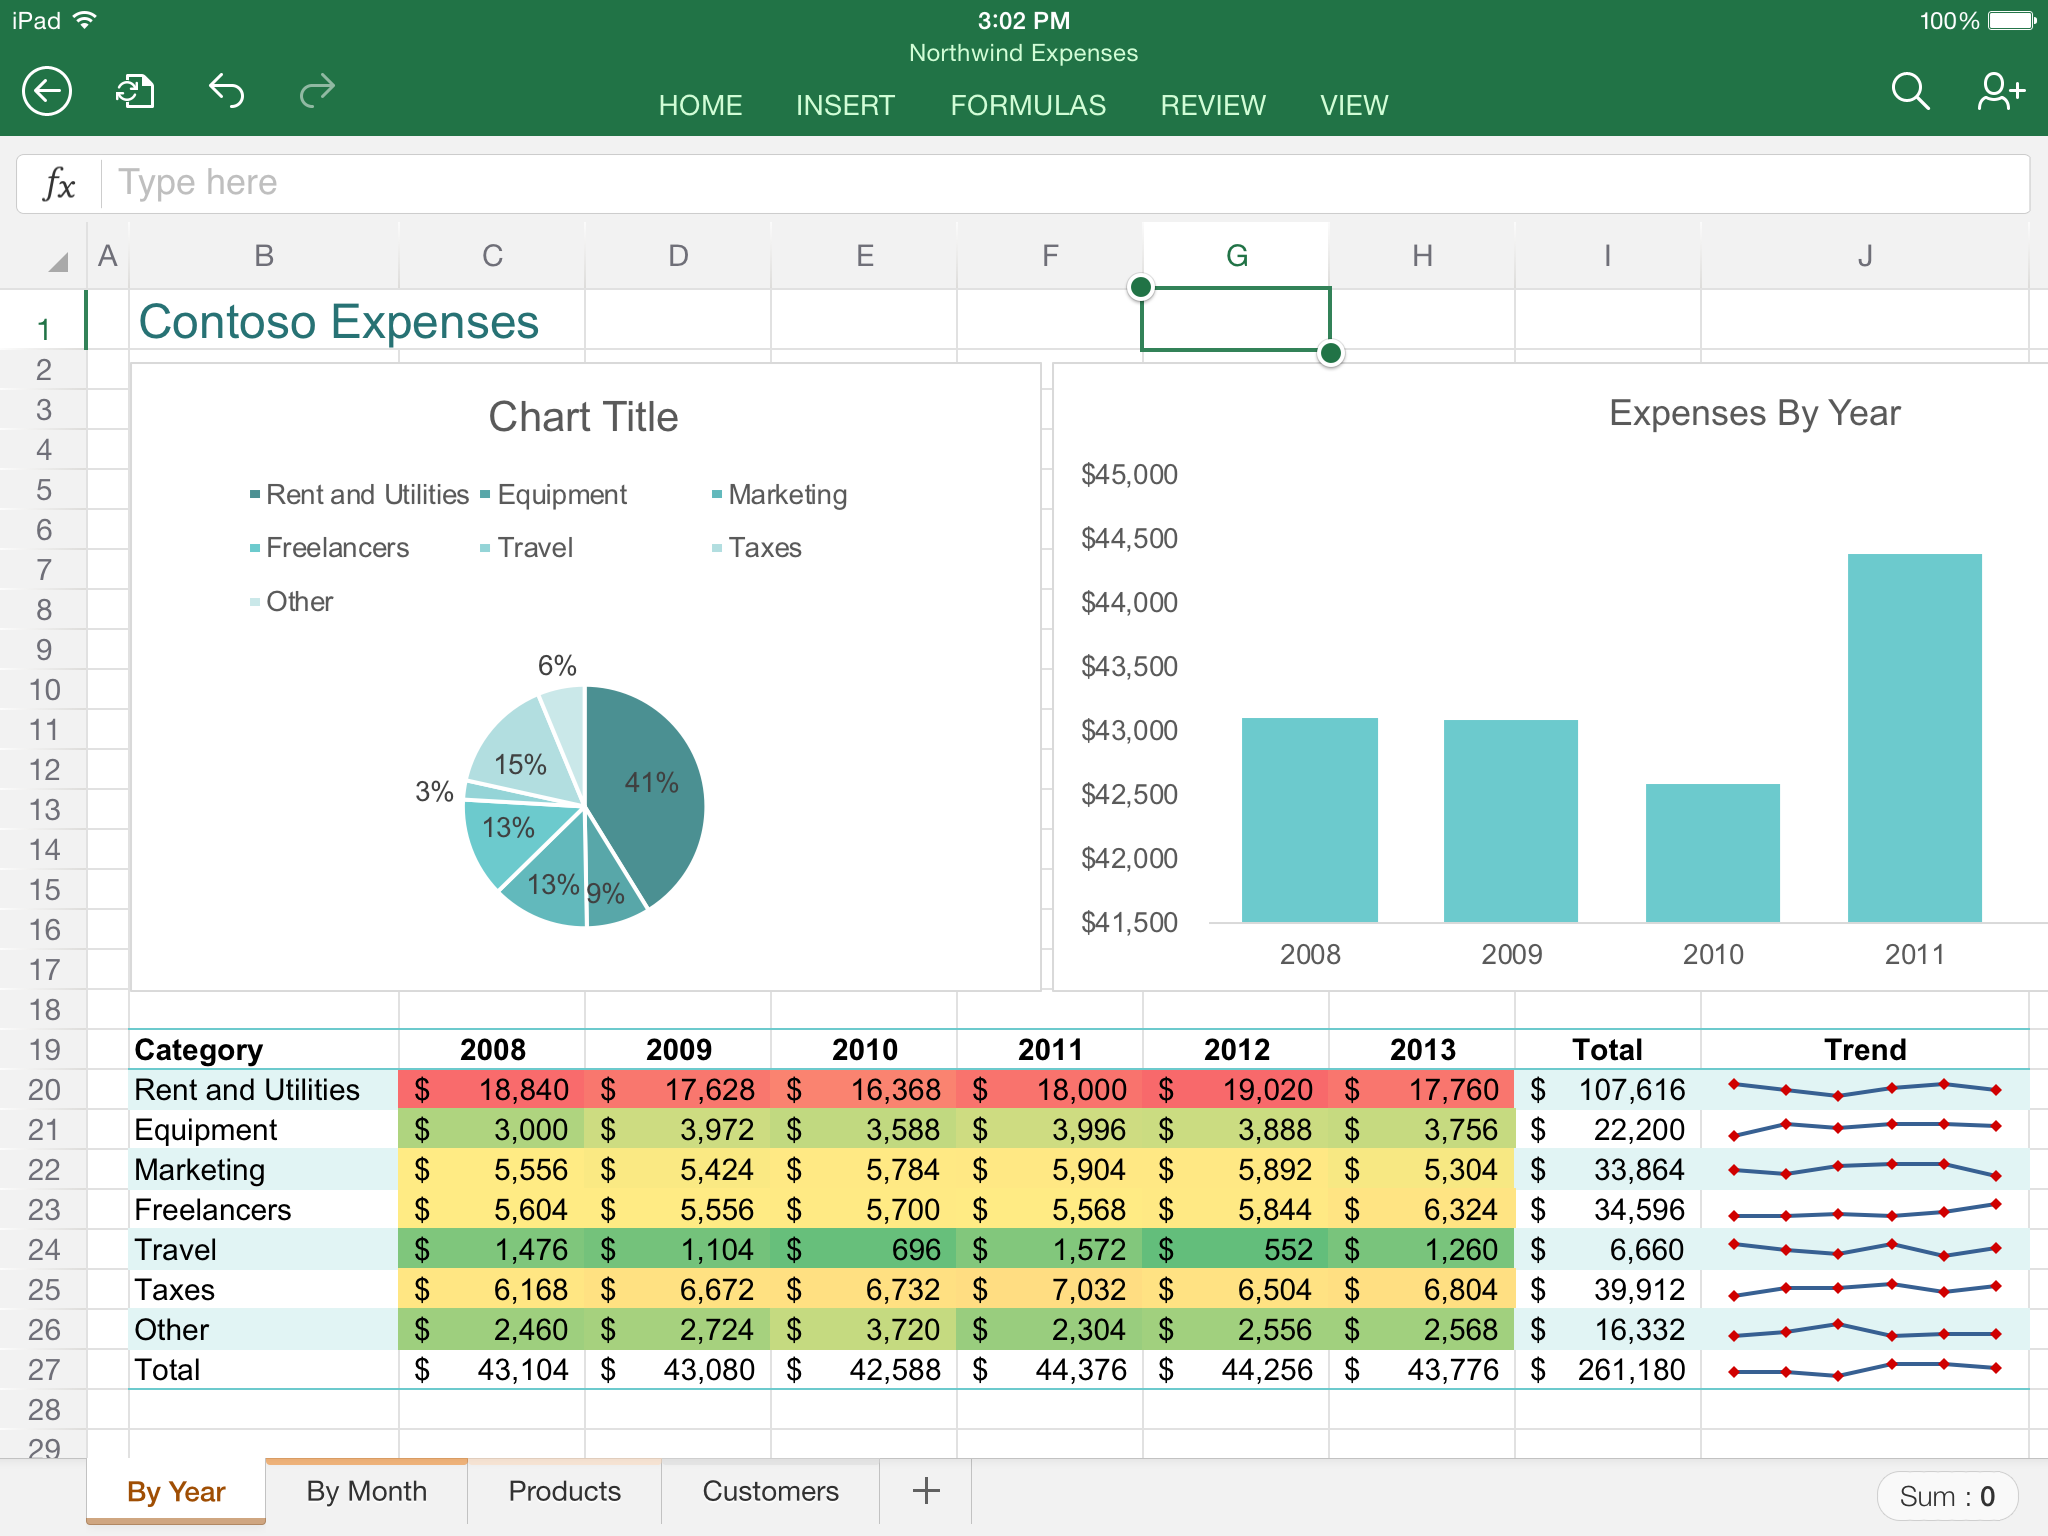 Ediblewildsus  Personable App Highlight Excel  Mobile Digital Now With Foxy Excel In Action With Astonishing Floating Bar Chart Excel Also Left Trim In Excel In Addition Excel Sales Dashboard And Correlation Test Excel As Well As Vbscript In Excel Additionally Excel Filename Function From Youstonybrookedu With Ediblewildsus  Foxy App Highlight Excel  Mobile Digital Now With Astonishing Excel In Action And Personable Floating Bar Chart Excel Also Left Trim In Excel In Addition Excel Sales Dashboard From Youstonybrookedu